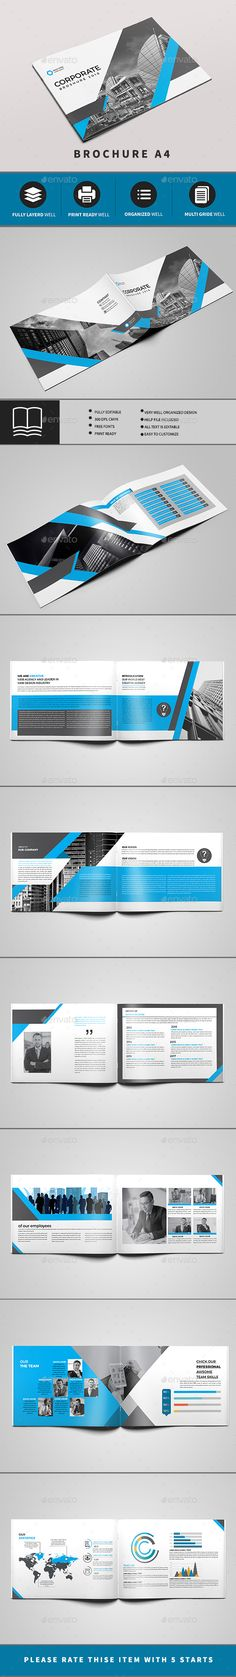 #Corporate #Brochure 16 PAGE - #Brochures Print Templates Download here: https://graphicriver.net/item/corporate-brochure-16-page/19701107?ref=alena994